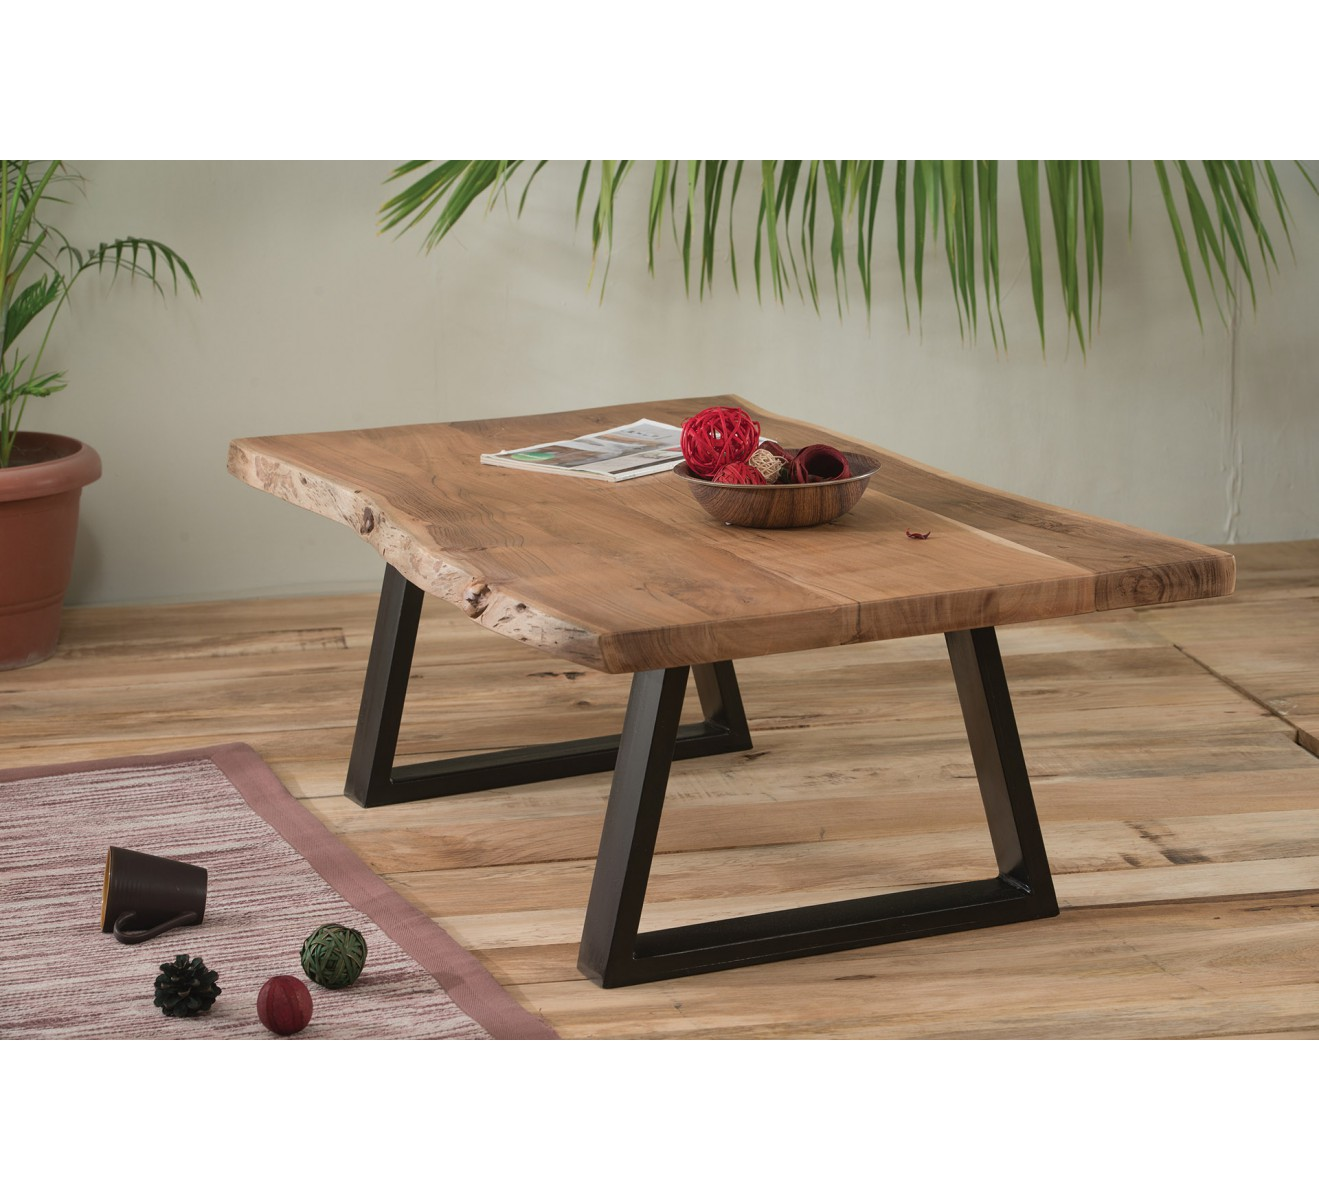 Table basse naturel m tal et bois 39 zen 39 for Table basse fer et bois